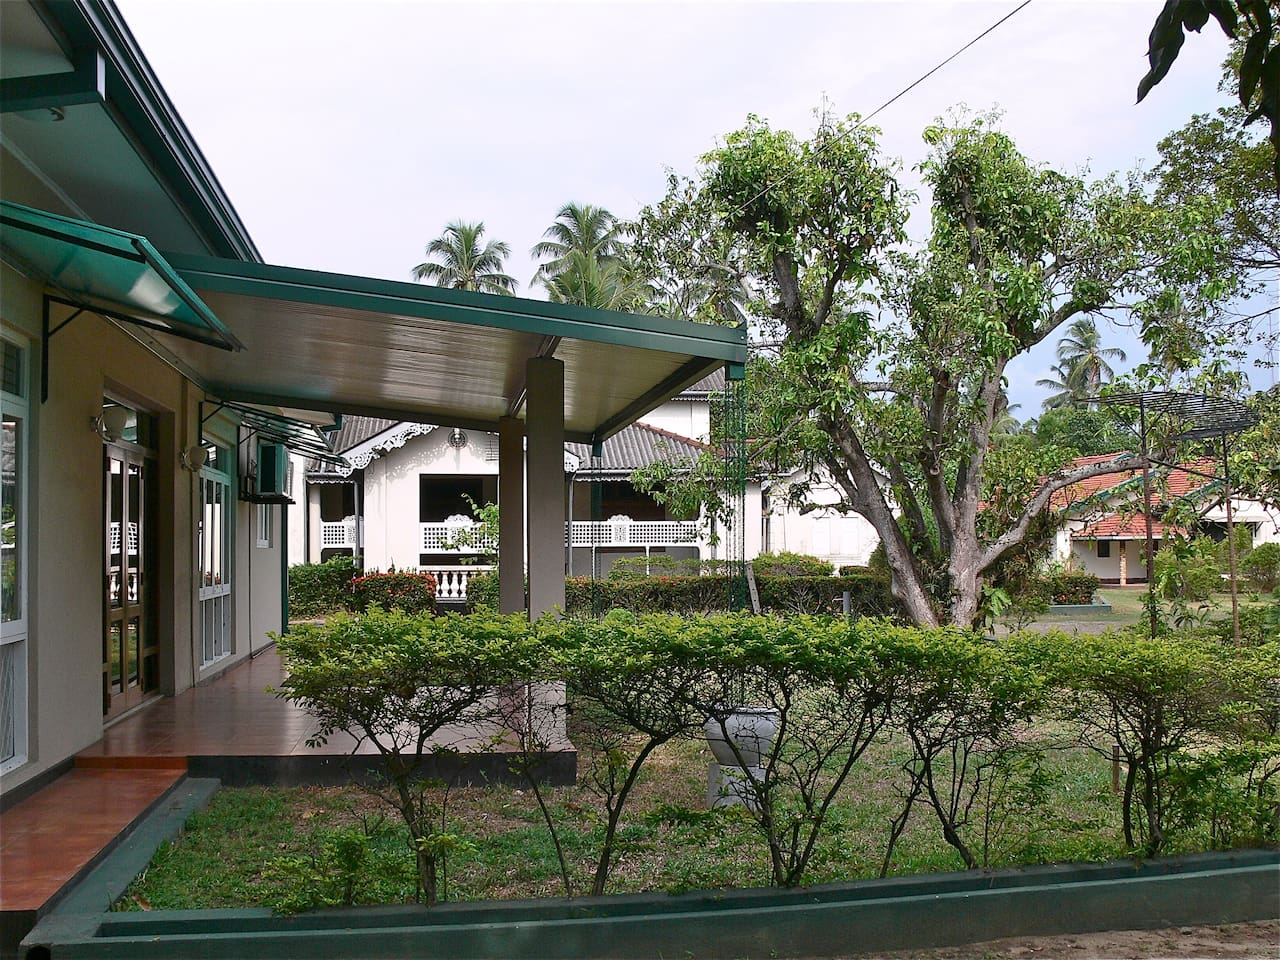 Guest House located in lush surroundings situated next to an ancestral house over 100 years old.